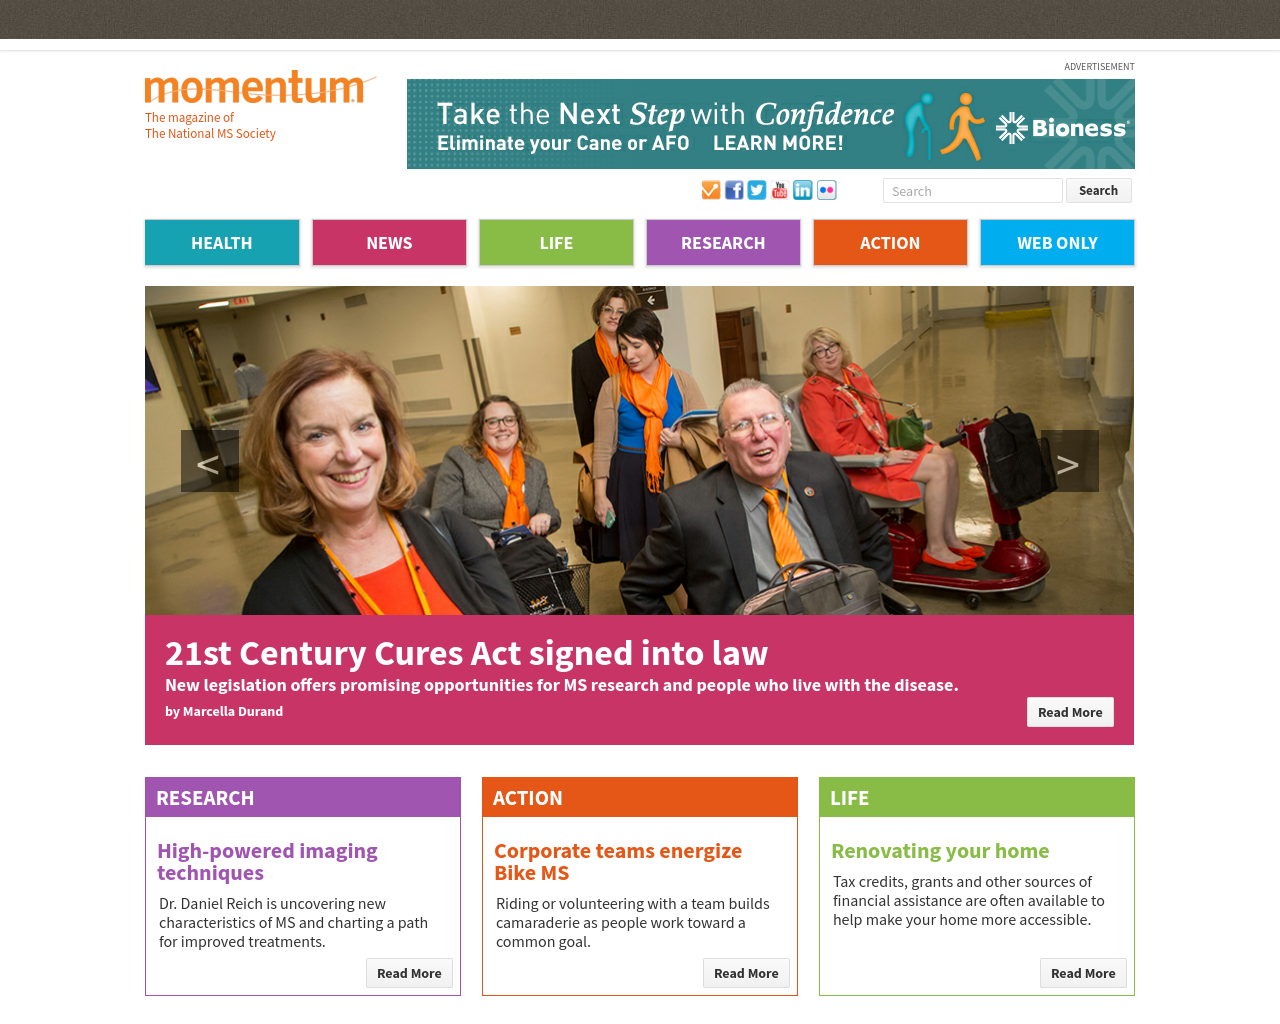 Momentum-The-Magazine-of-the-National-MS-Society-Advertising-Reviews-Pricing